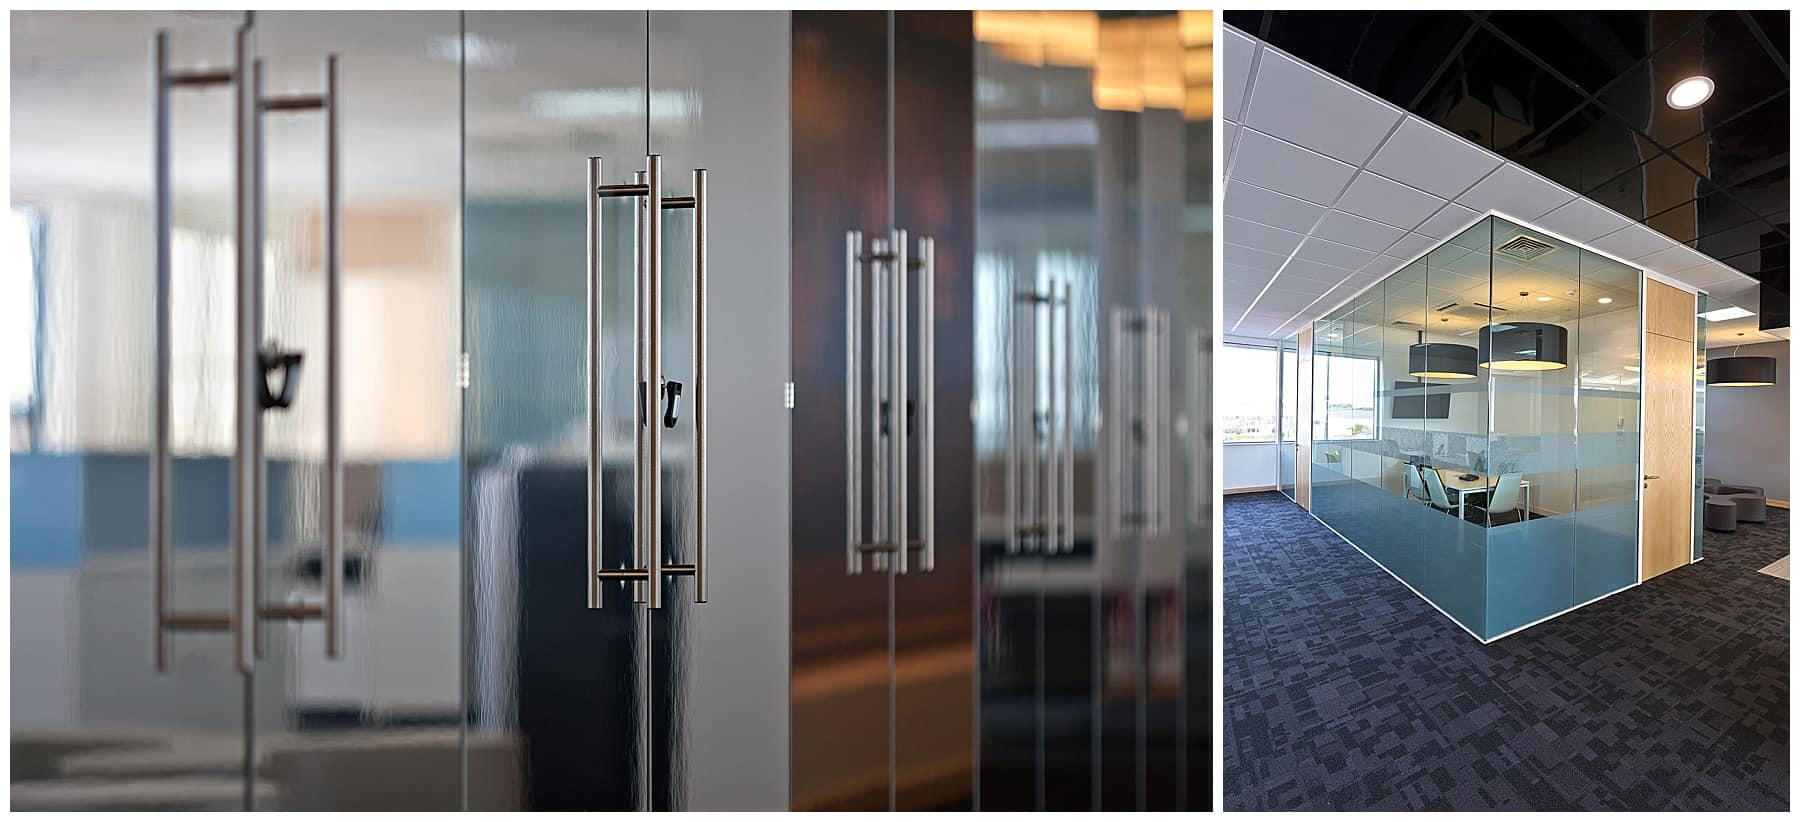 glass partition doors with stainless steel handles